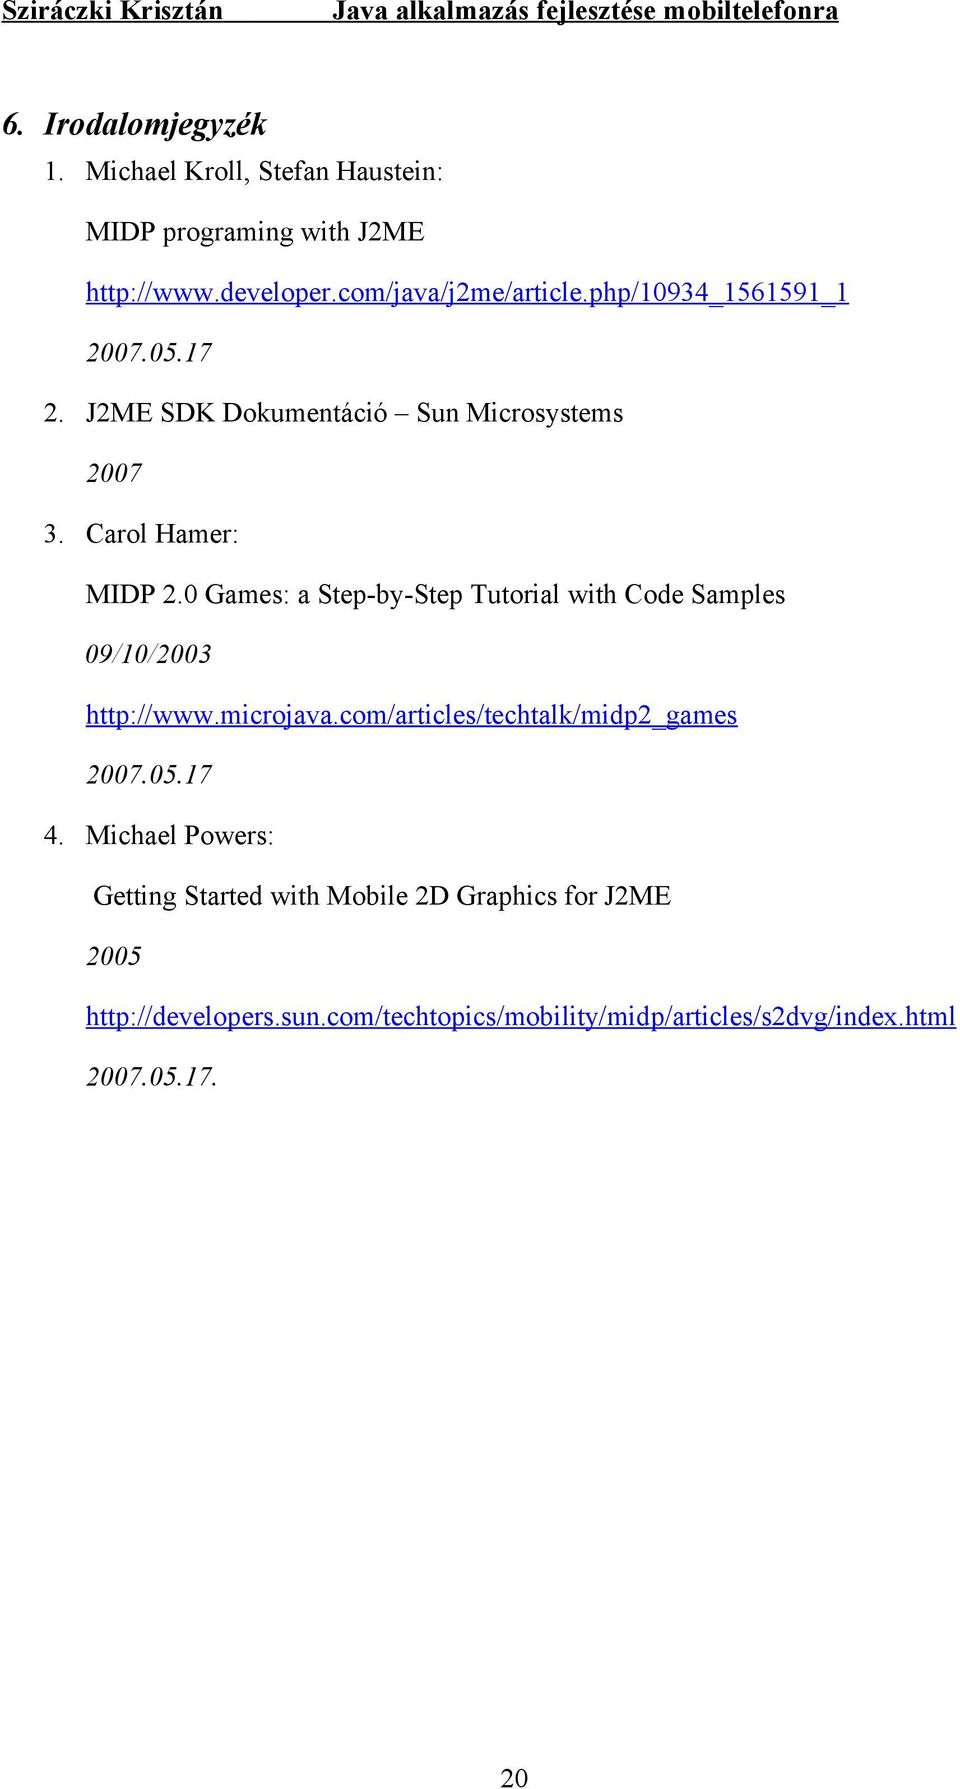 0 Games: a Step-by-Step Tutorial with Code Samples 09/10/2003 http://www.microjava.com/articles/techtalk/midp2_games 2007.05.